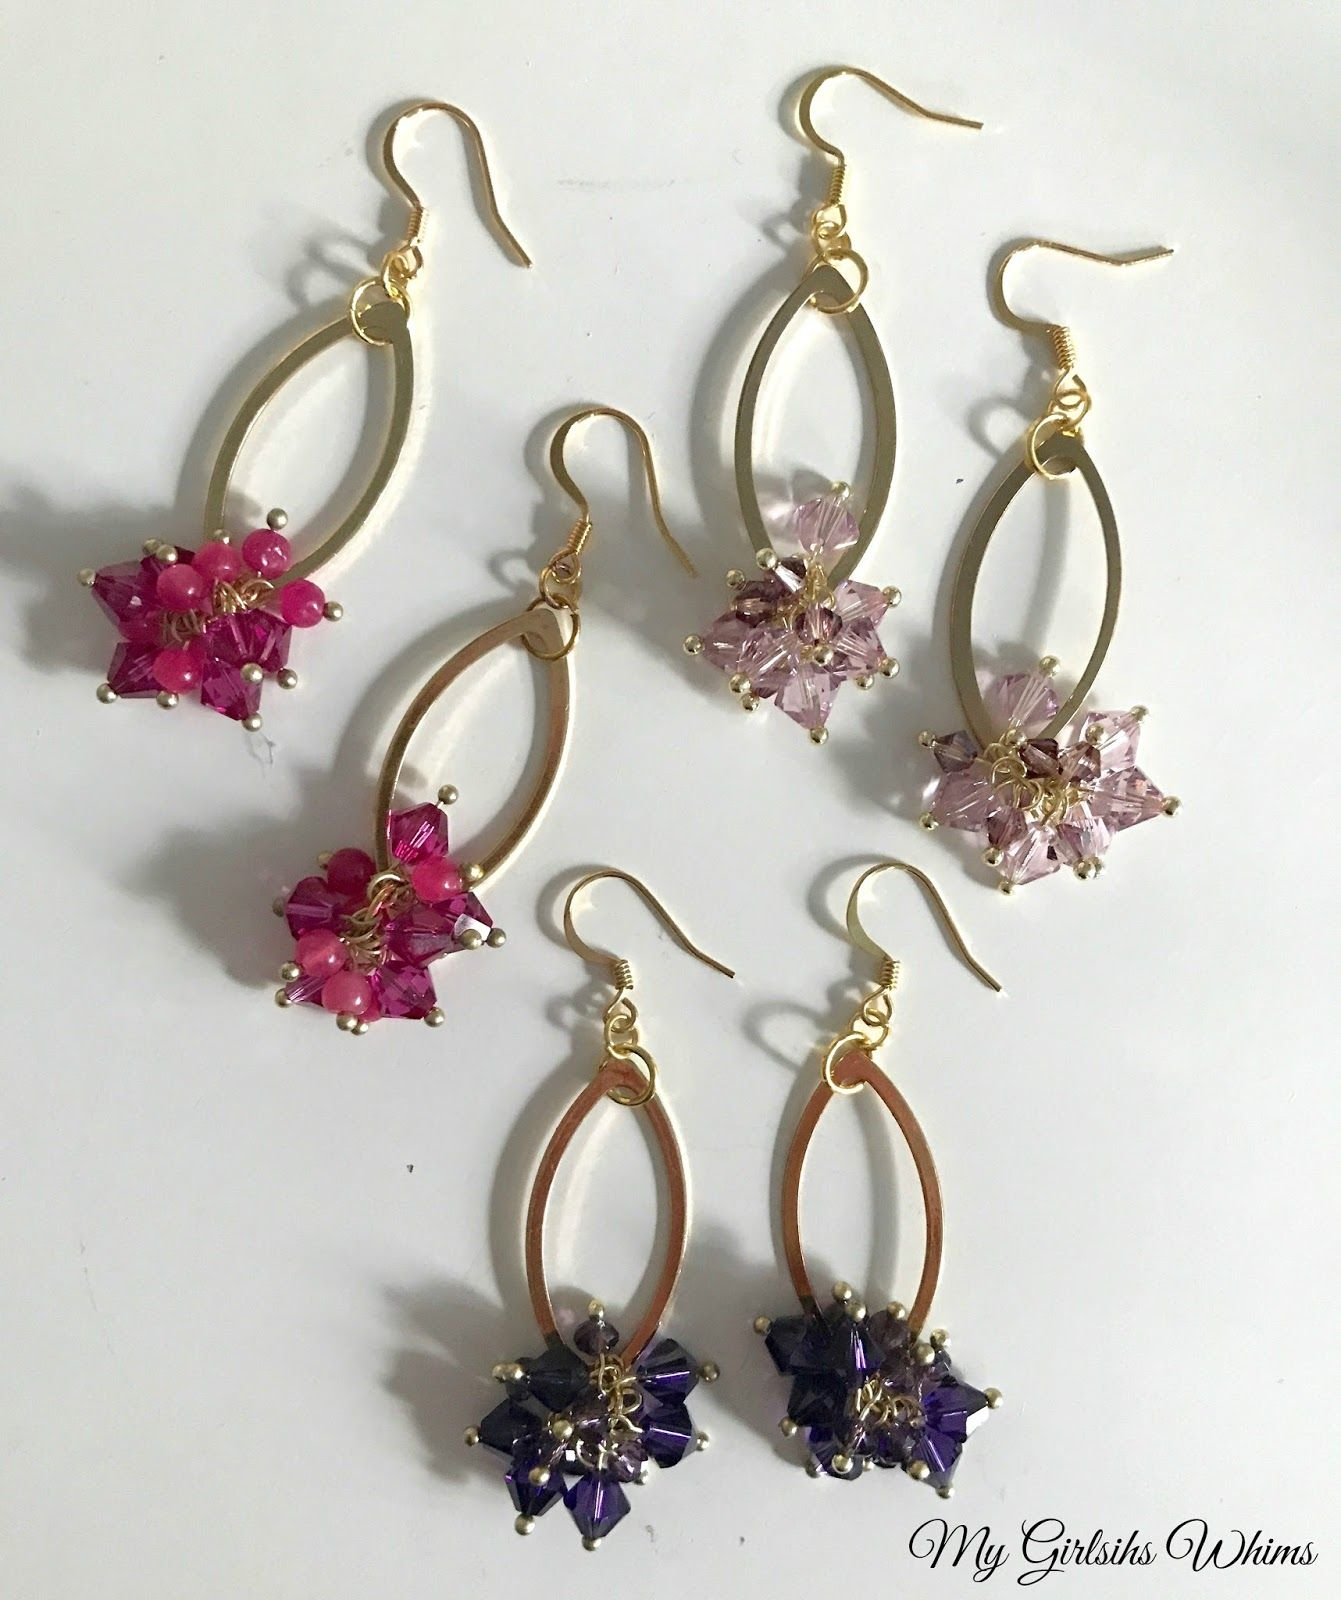 These Diy Crystal Cer Earrings Are A Beginner Jewelry Project That Look Professionally Made But